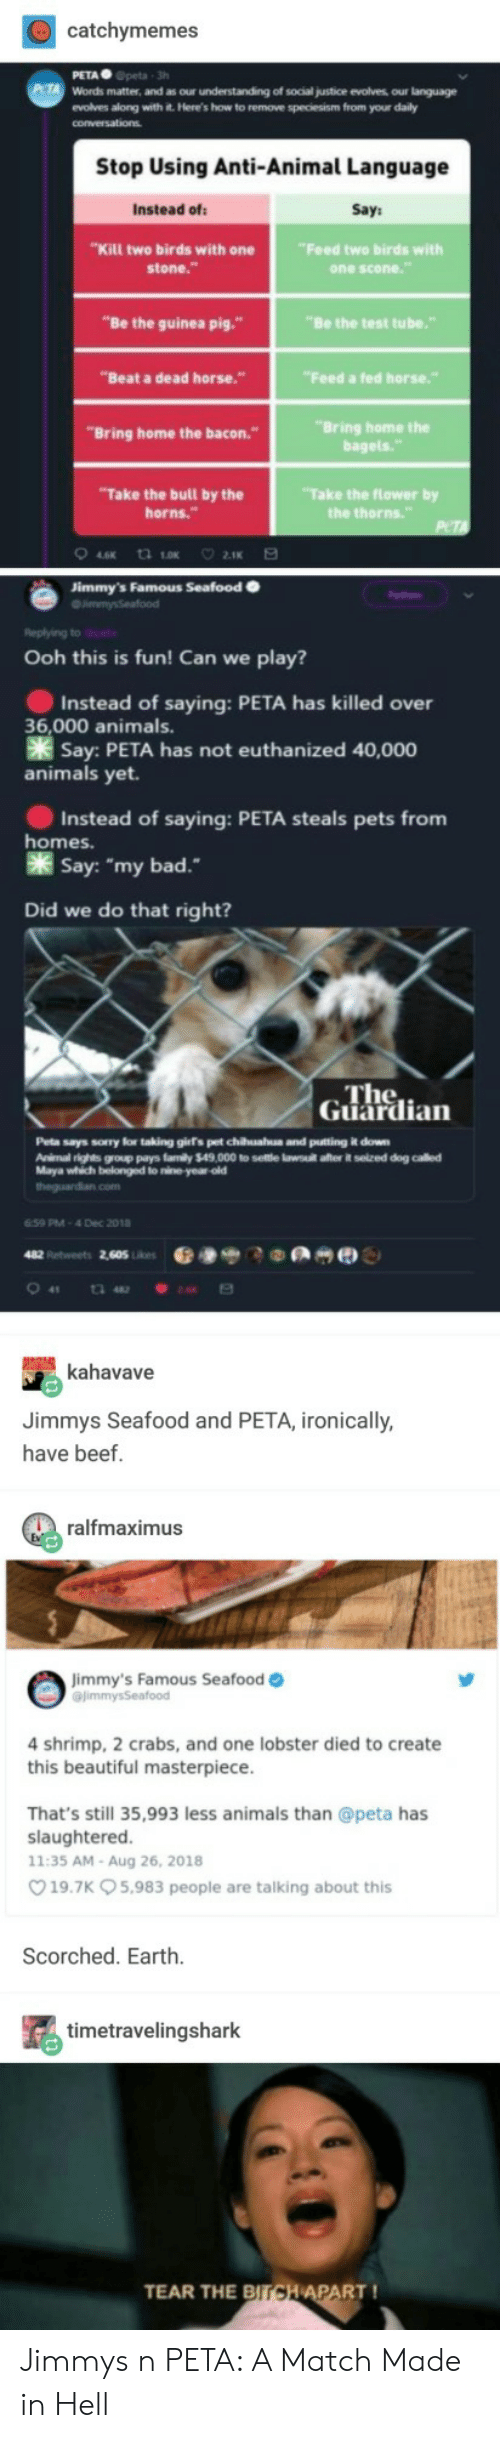 """horns: catchymemes  PETA Gpeta 3h  Words matter, and as our understanding of social justice evolves our language  evolves along with it. Here's how to remove speciesism from your daily  Stop Using Anti-Animal Language  Instead of  Say  """"Kill two birds with one  stone.""""  Feed two birds with  one scone  """"Be the guinea pig.""""  """"Be the test tube.""""  """"Beat a dead horse.""""  Feed a fed horse.""""  """"Bring home the  bagels.  """"Bring home the bacon.  Take the bull by the  horns.""""  """"Take the flower by  Jimmy's Famous Seafood  Ooh this is fun! Can we play?  Instead of saying: PETA has killed over  Say: PETA has not euthanized 40,000  Instead of saying: PETA steals pets from  Say: """"my bad.  36,000 animals.  animals yet.  homes.  Did we do that right?  ne  Guardian  Peta says sorry lor taking girs pet chuahua and putting it down  Animal rights group pays famly $49,000 to seltle lawsutl after it selzed dog called  Maya which belonged to nine year old  theguardian.com  659 PM-4 Dec 2018  kahavave  Jimmys Seafood and PETA, ironically  have beef.  ralfmaximus  mmy's Famous Seafood o  4 shrimp, 2 crabs, and one lobster died to create  this beautiful masterpiece  That's still 35,993 less animals than @peta has  slaughtered  11:35 AM-Aug 26, 2018  19.7K 5,983 people are talking about this  Scorched. Earth  timetravelingshark  TEAR THE  PART! Jimmys n PETA: A Match Made in Hell"""